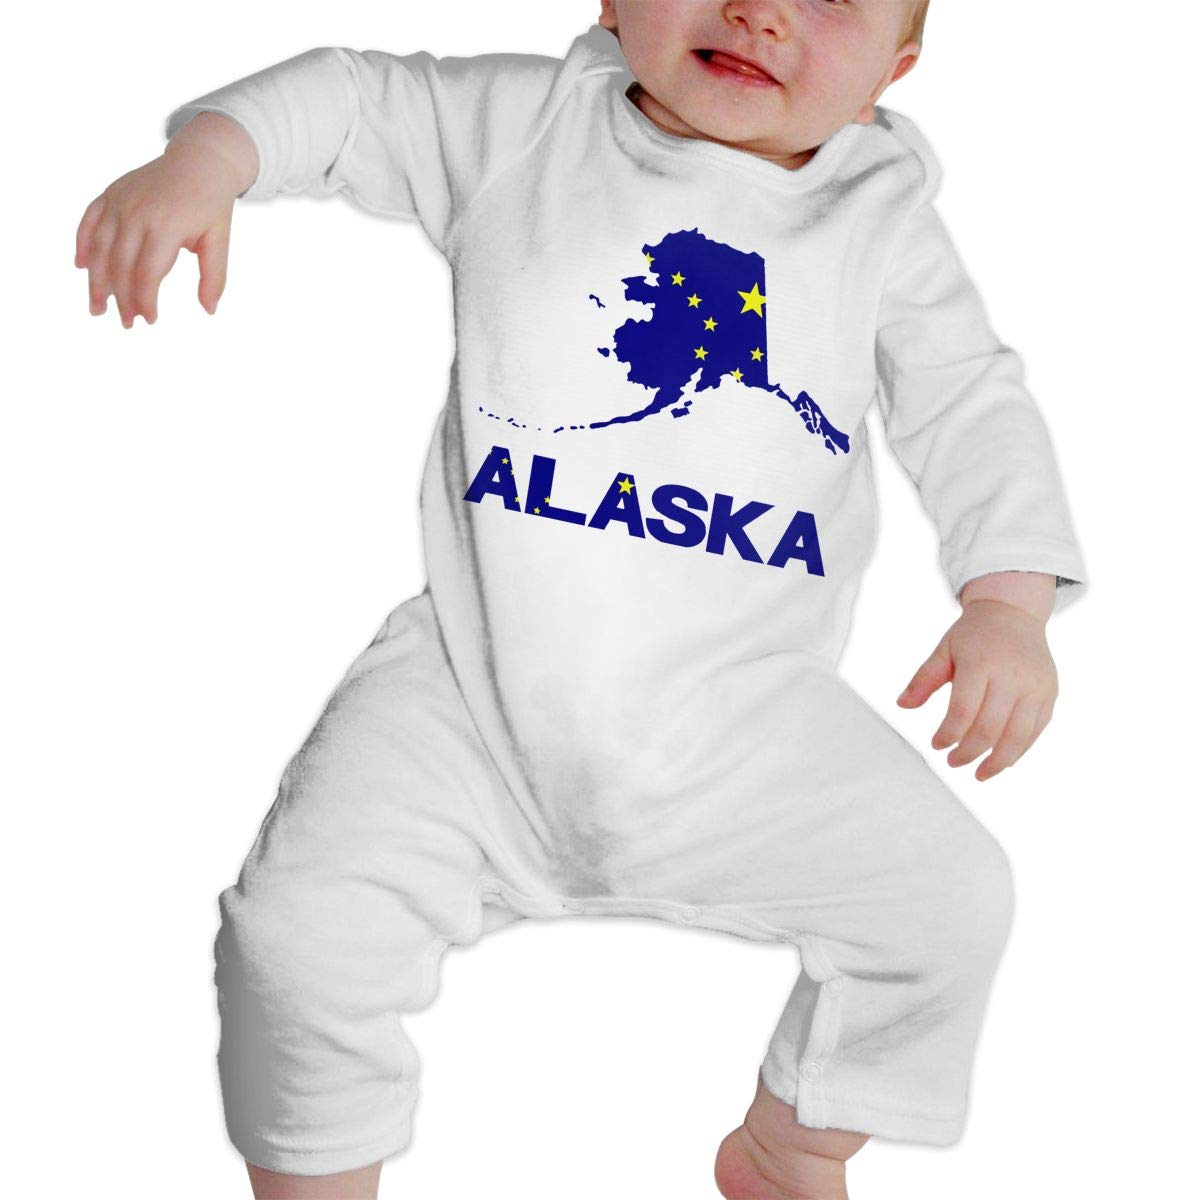 A1BY-5US Newborn Baby Boys Girls Cotton Long Sleeve Alaska Map Flag and Text Jumpsuit Romper One-Piece Romper Clothes